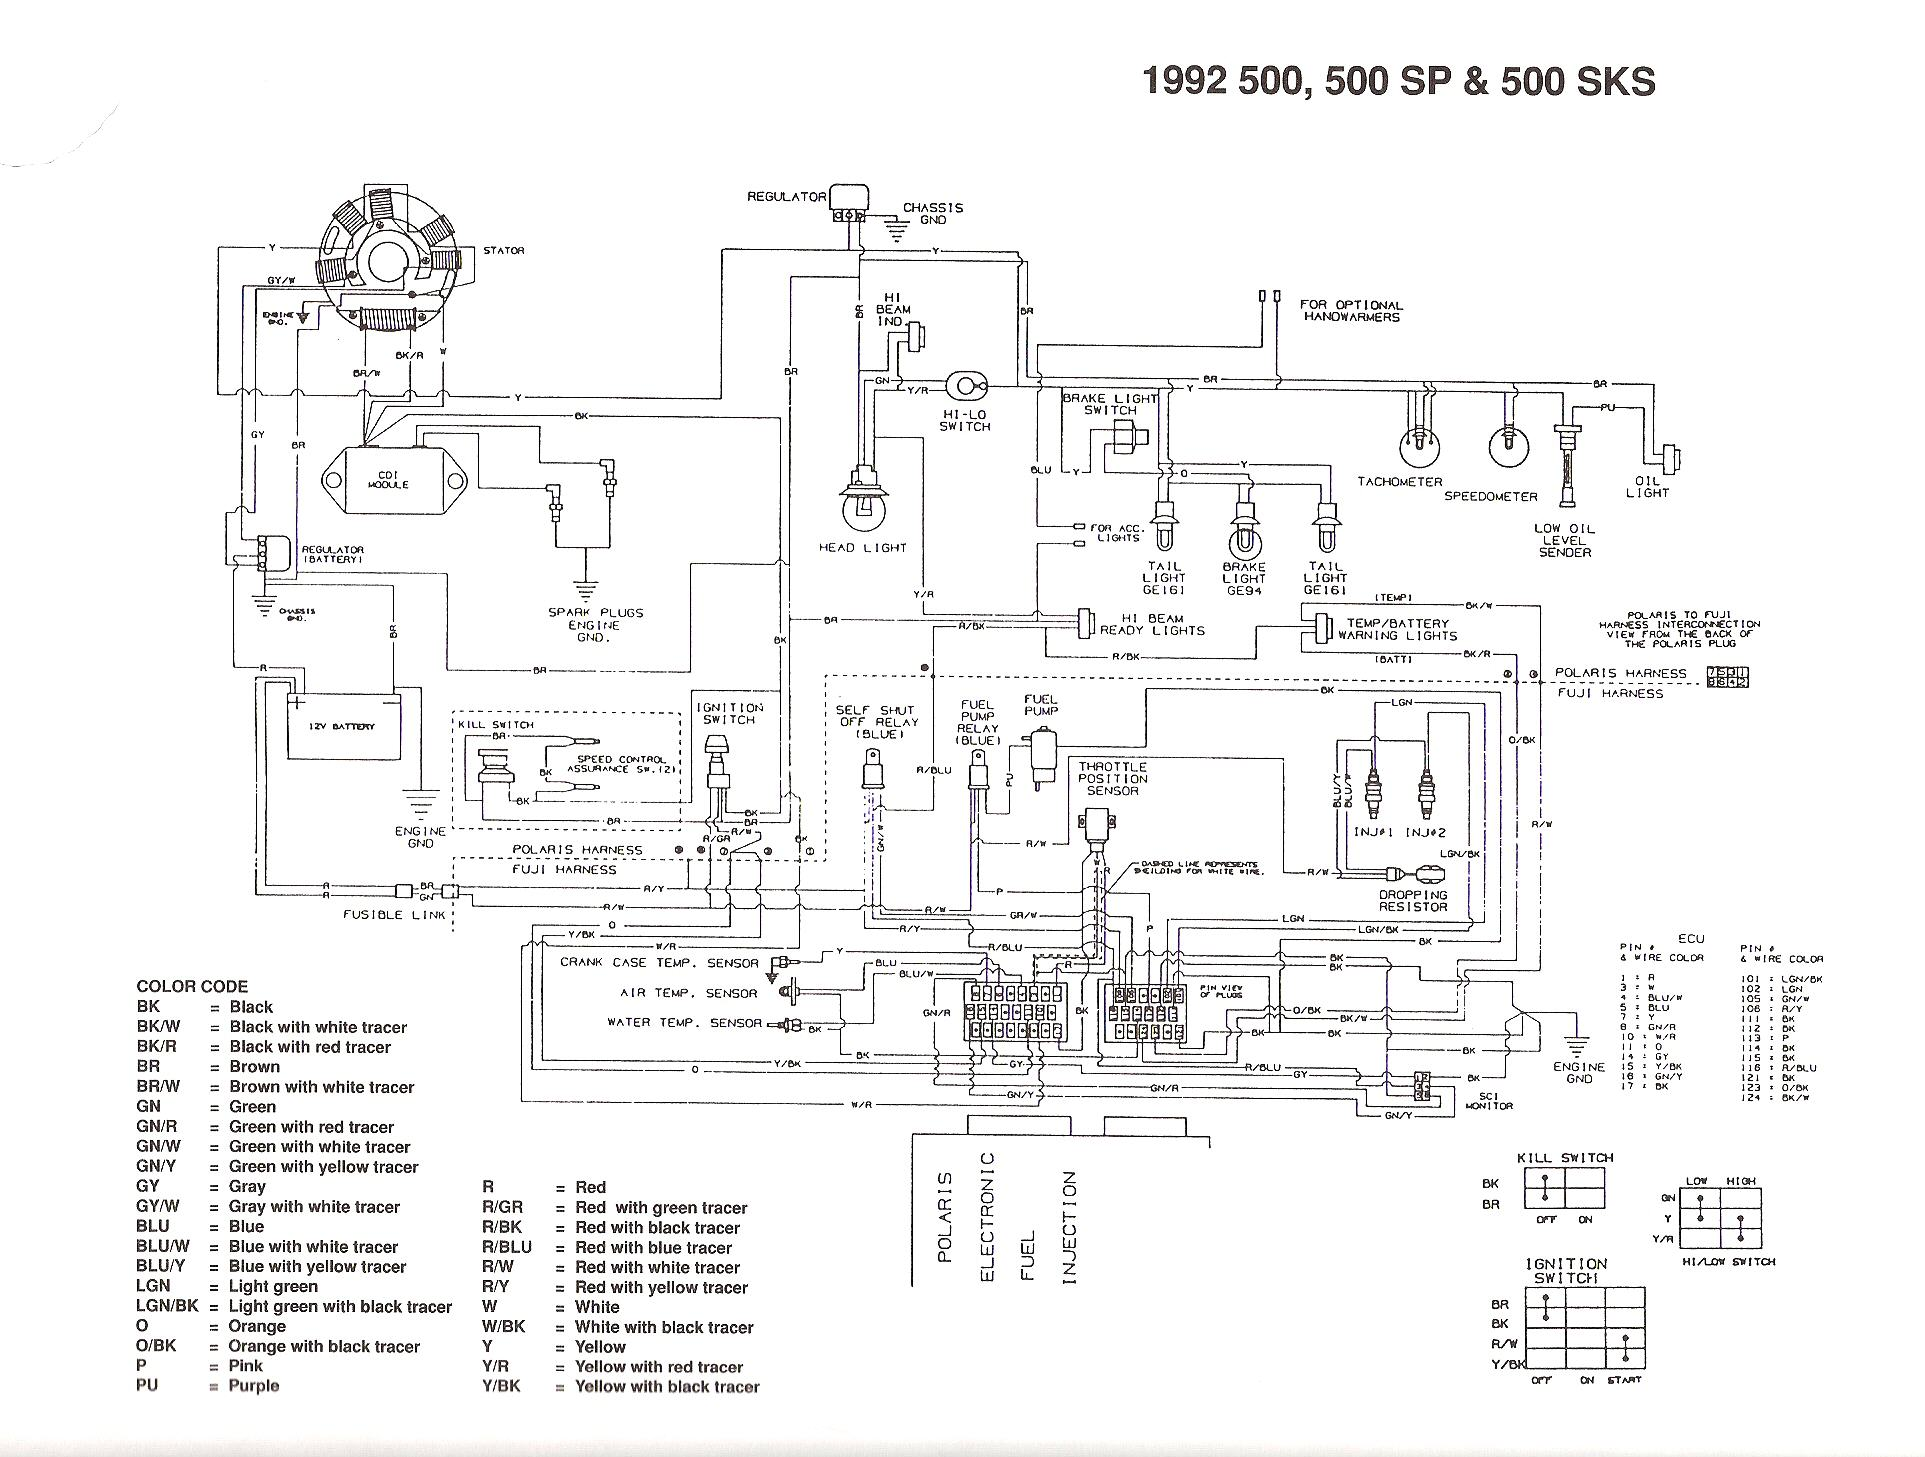 wiring diagram for polaris ranger 500 hobexi78